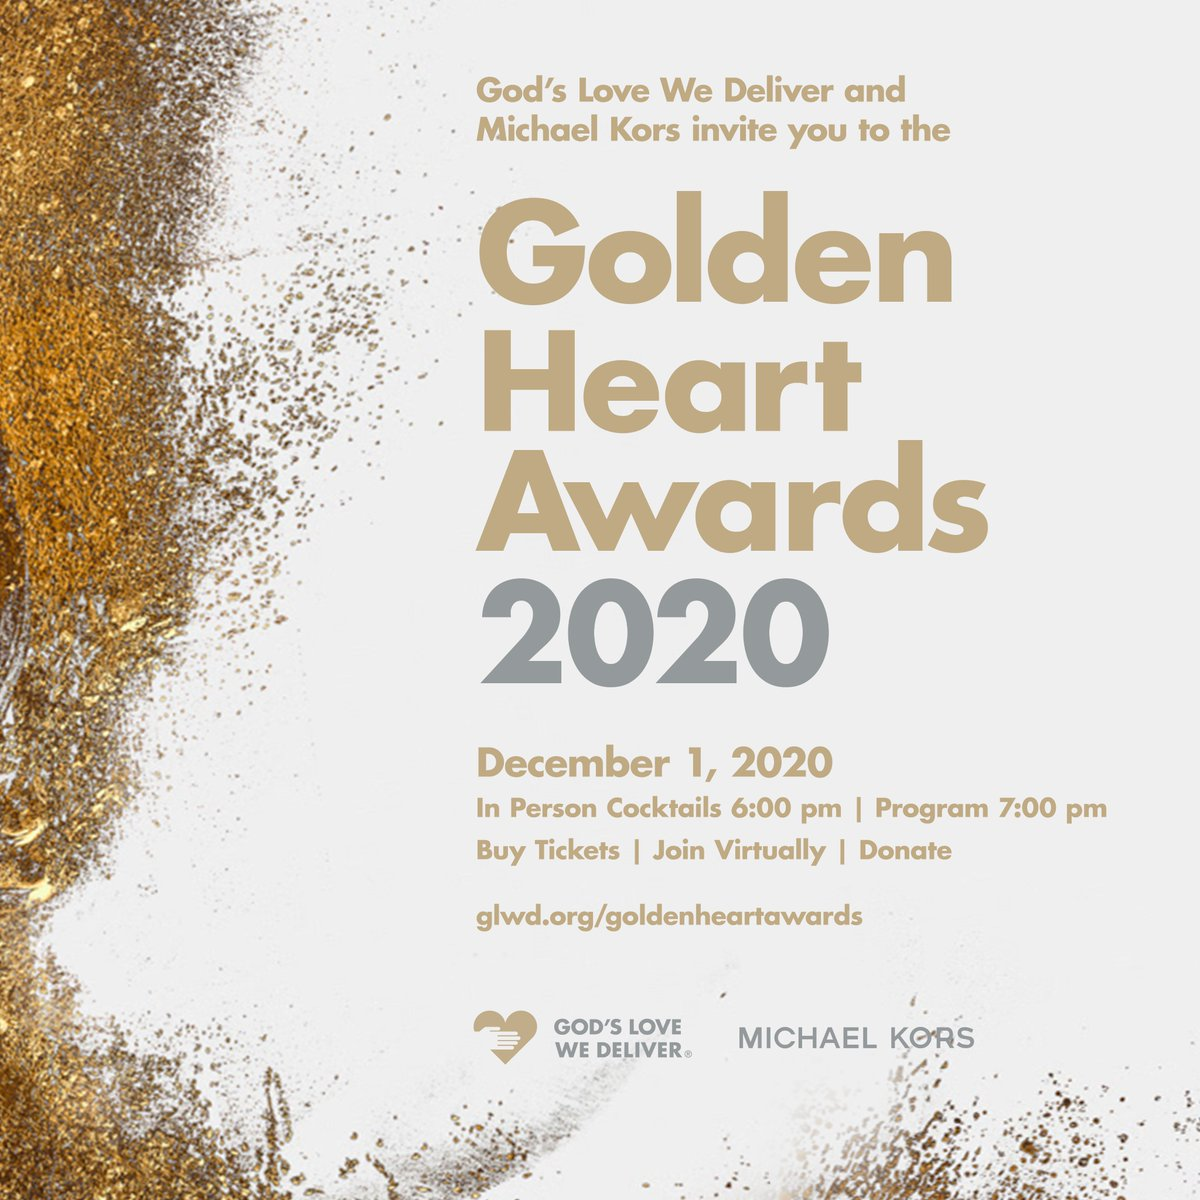 The #GoldenHeartAwards will have a hybrid in-person dinner and virtual event! God's Love and our great friends at @MichaelKors are thrilled to produce this event in partnership with some of NYC's finest restaurants including...